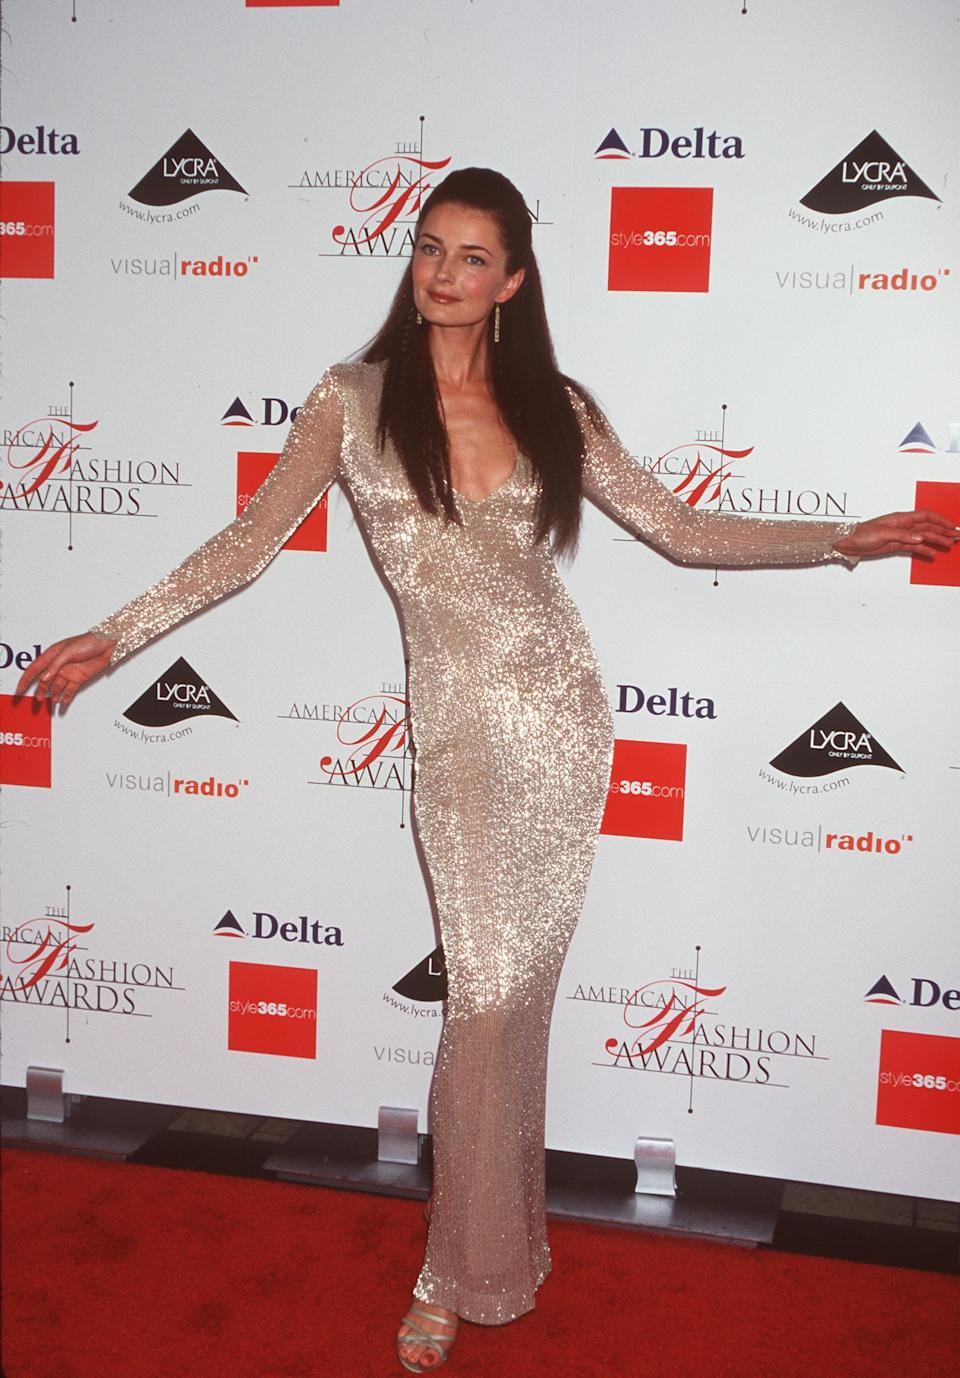 Model Paulina Porizkova wearing a long gold dress on the red carpet at the Council of Fashion Designers of America (CFDA) Awards at Avery Fisher Hall June 15, 2000 in New York City